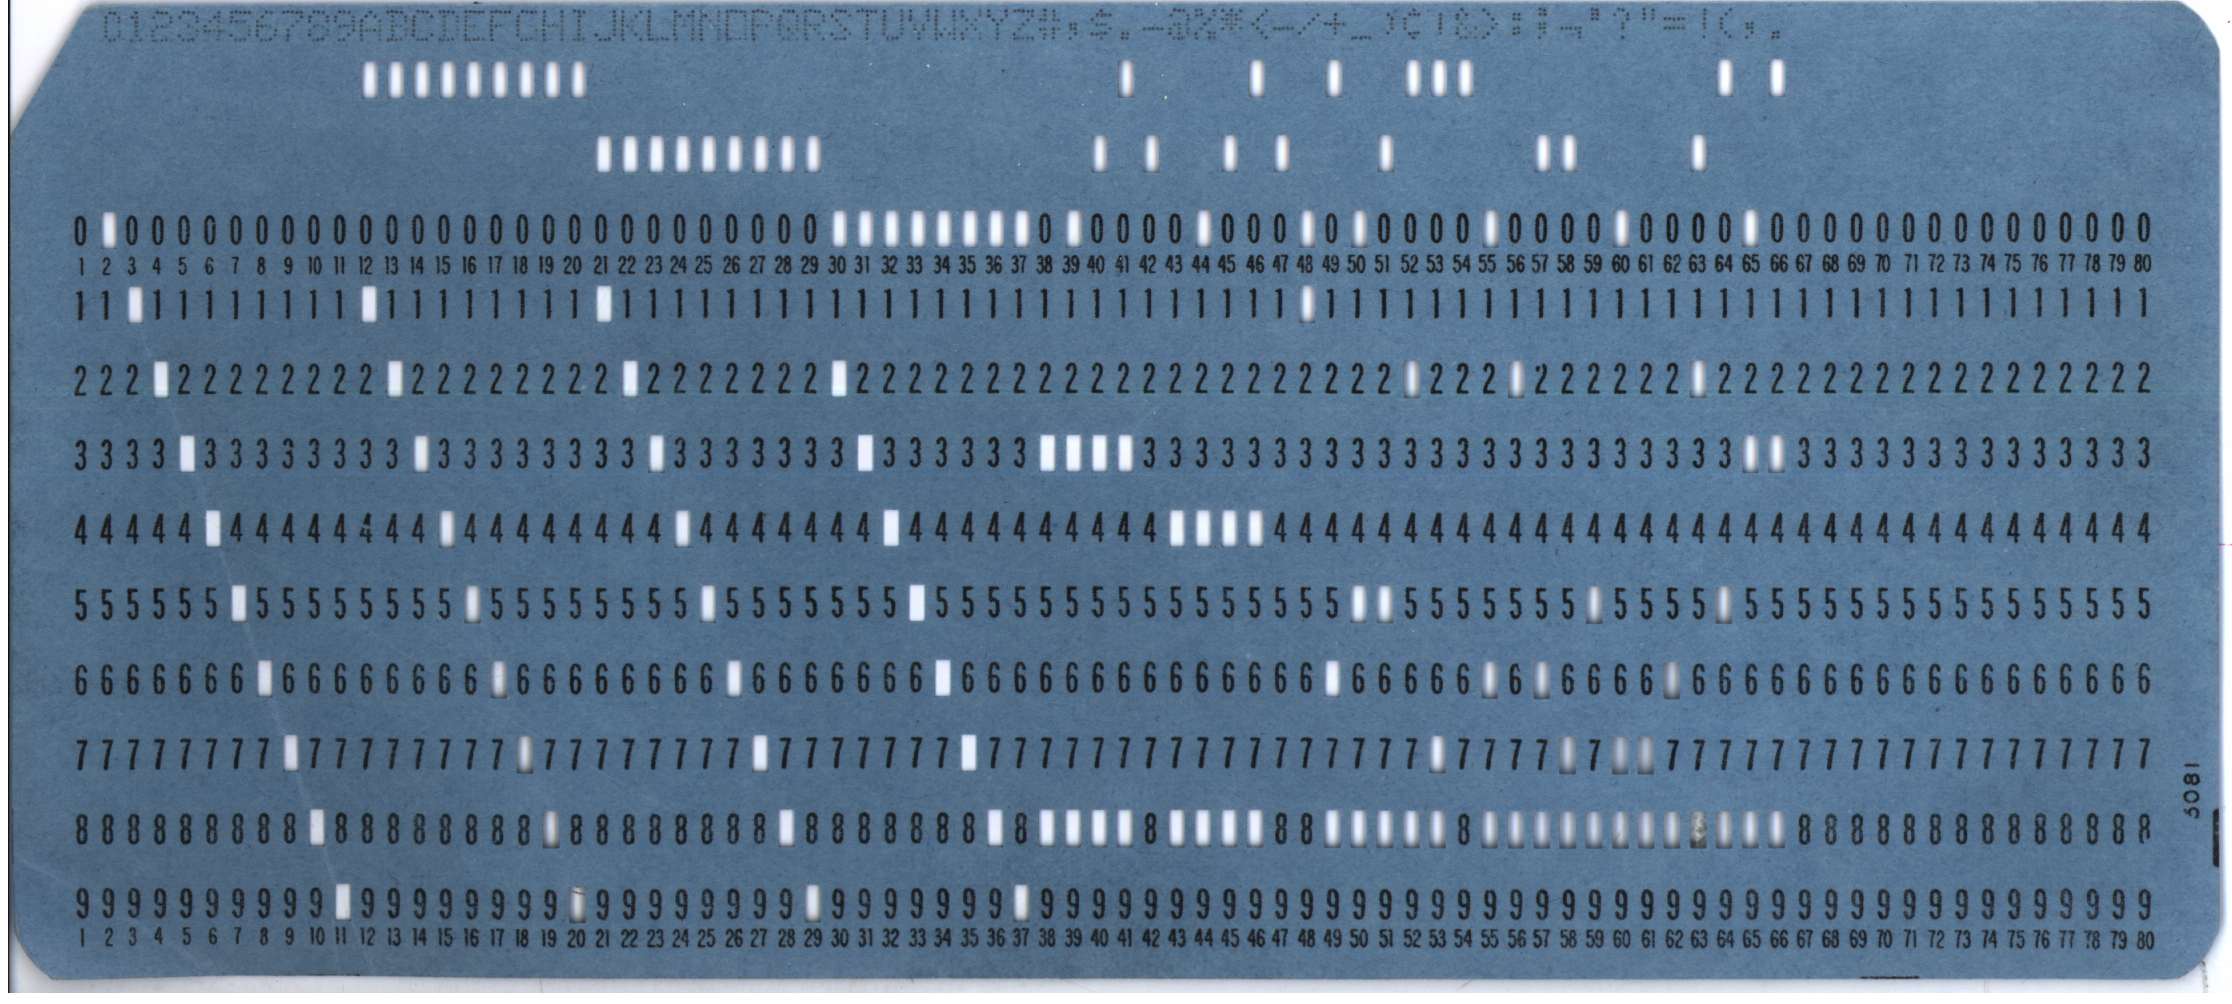 https://upload.wikimedia.org/wikipedia/commons/4/4c/Blue-punch-card-front-horiz.png